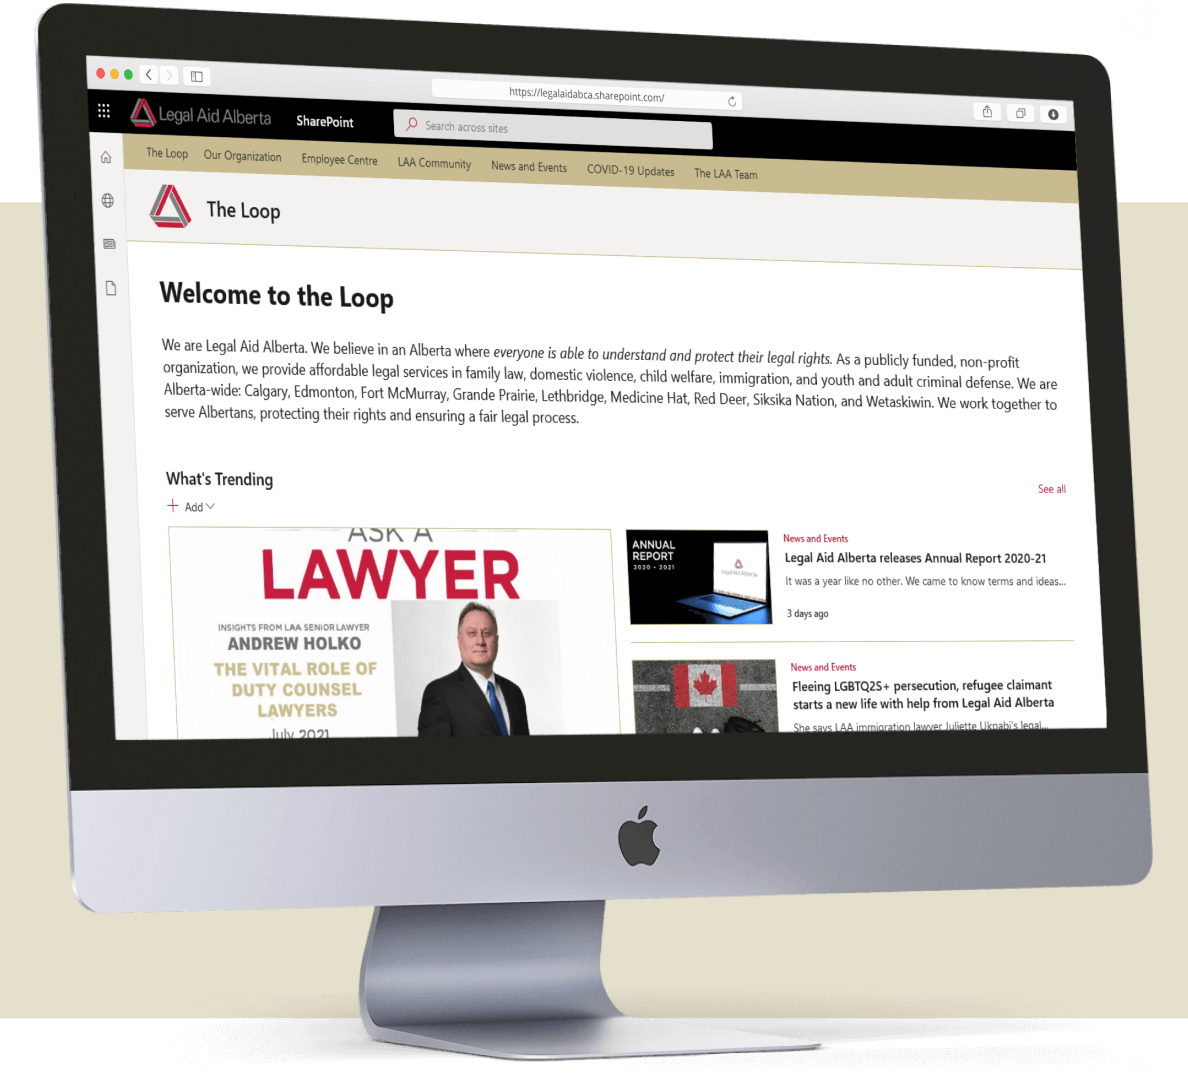 The home page of Legal Aid Alberta's digital workplace displayed on a monitor.